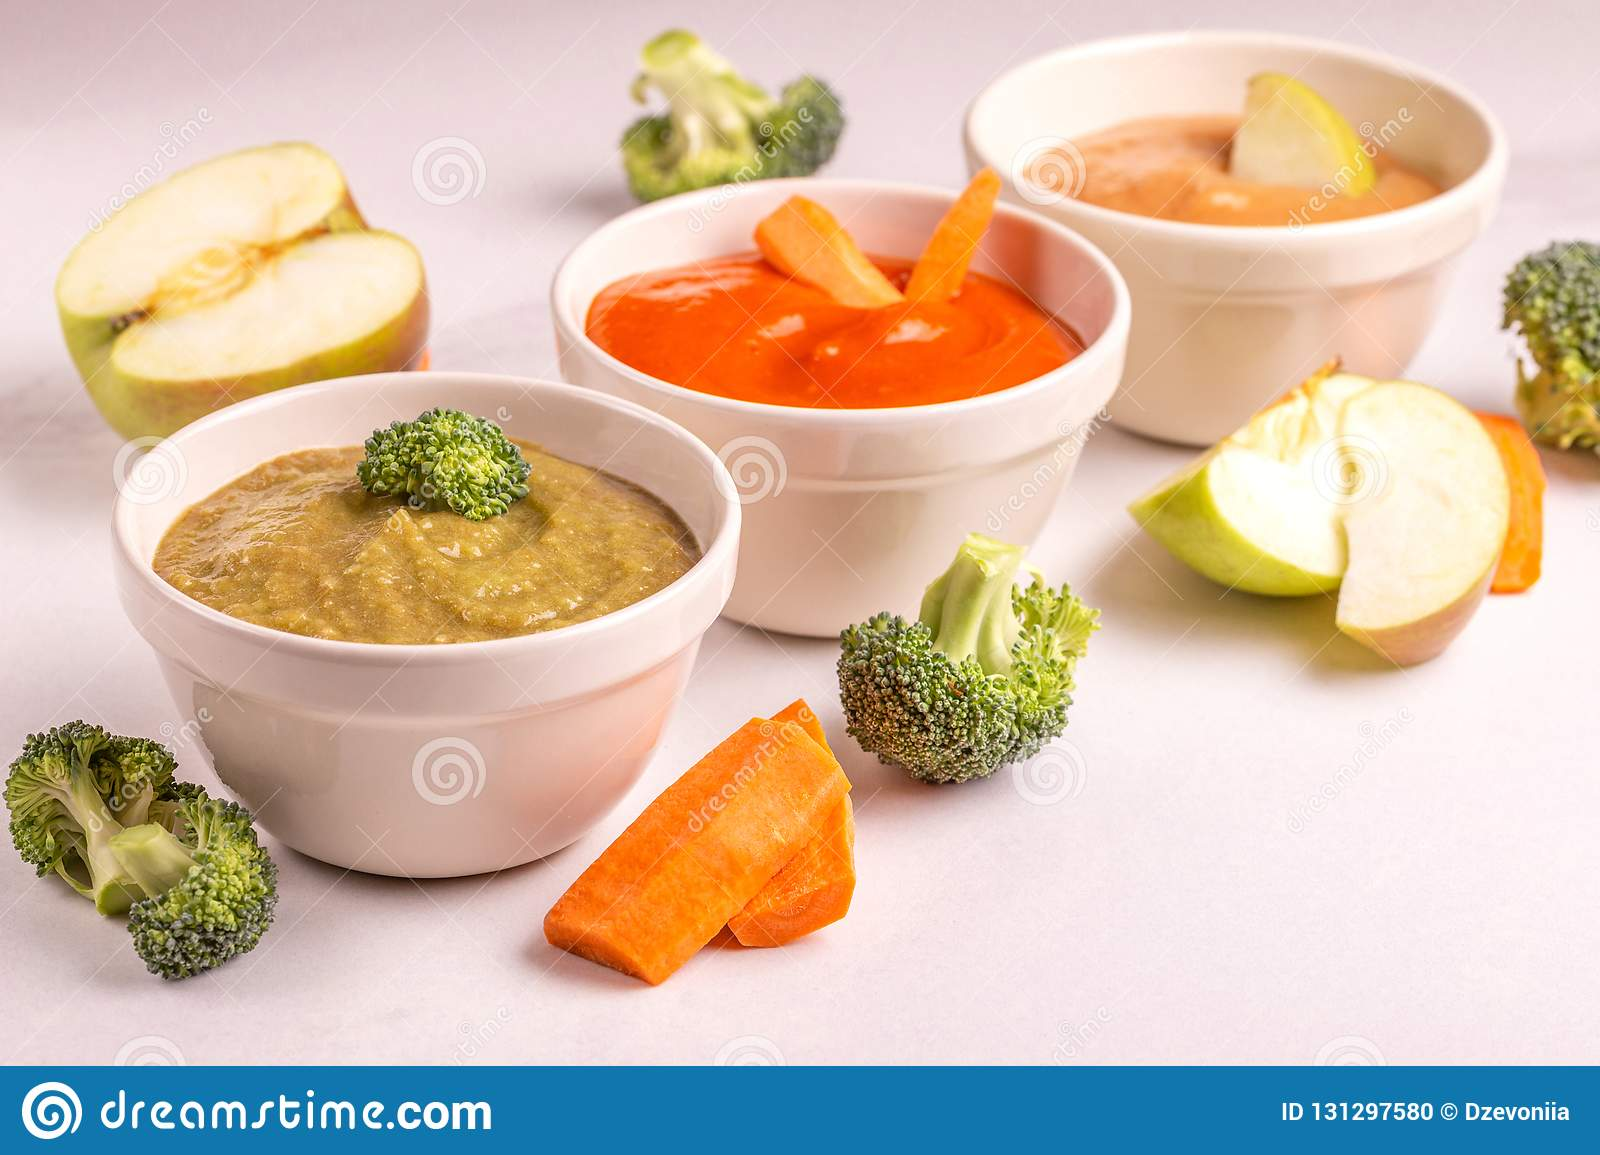 Variation Pureed Baby Food In Clay Bowls With Ingredients Stock